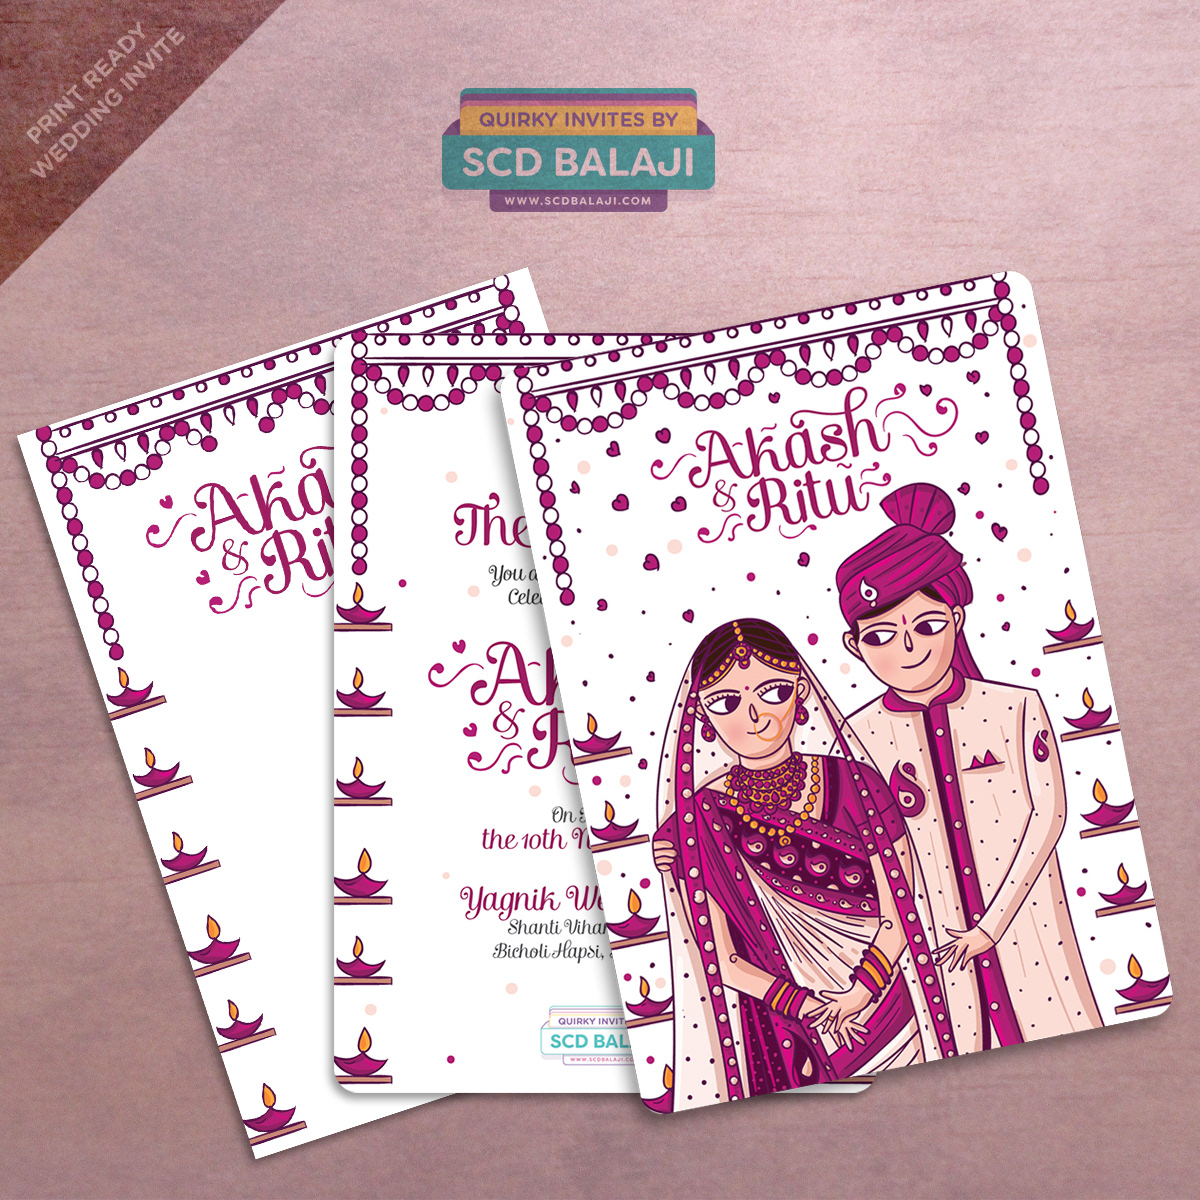 Quirky creative indian wedding invitations gujarati wedding quirky creative indian wedding invitations gujarati wedding invitation card illustration design stopboris Choice Image